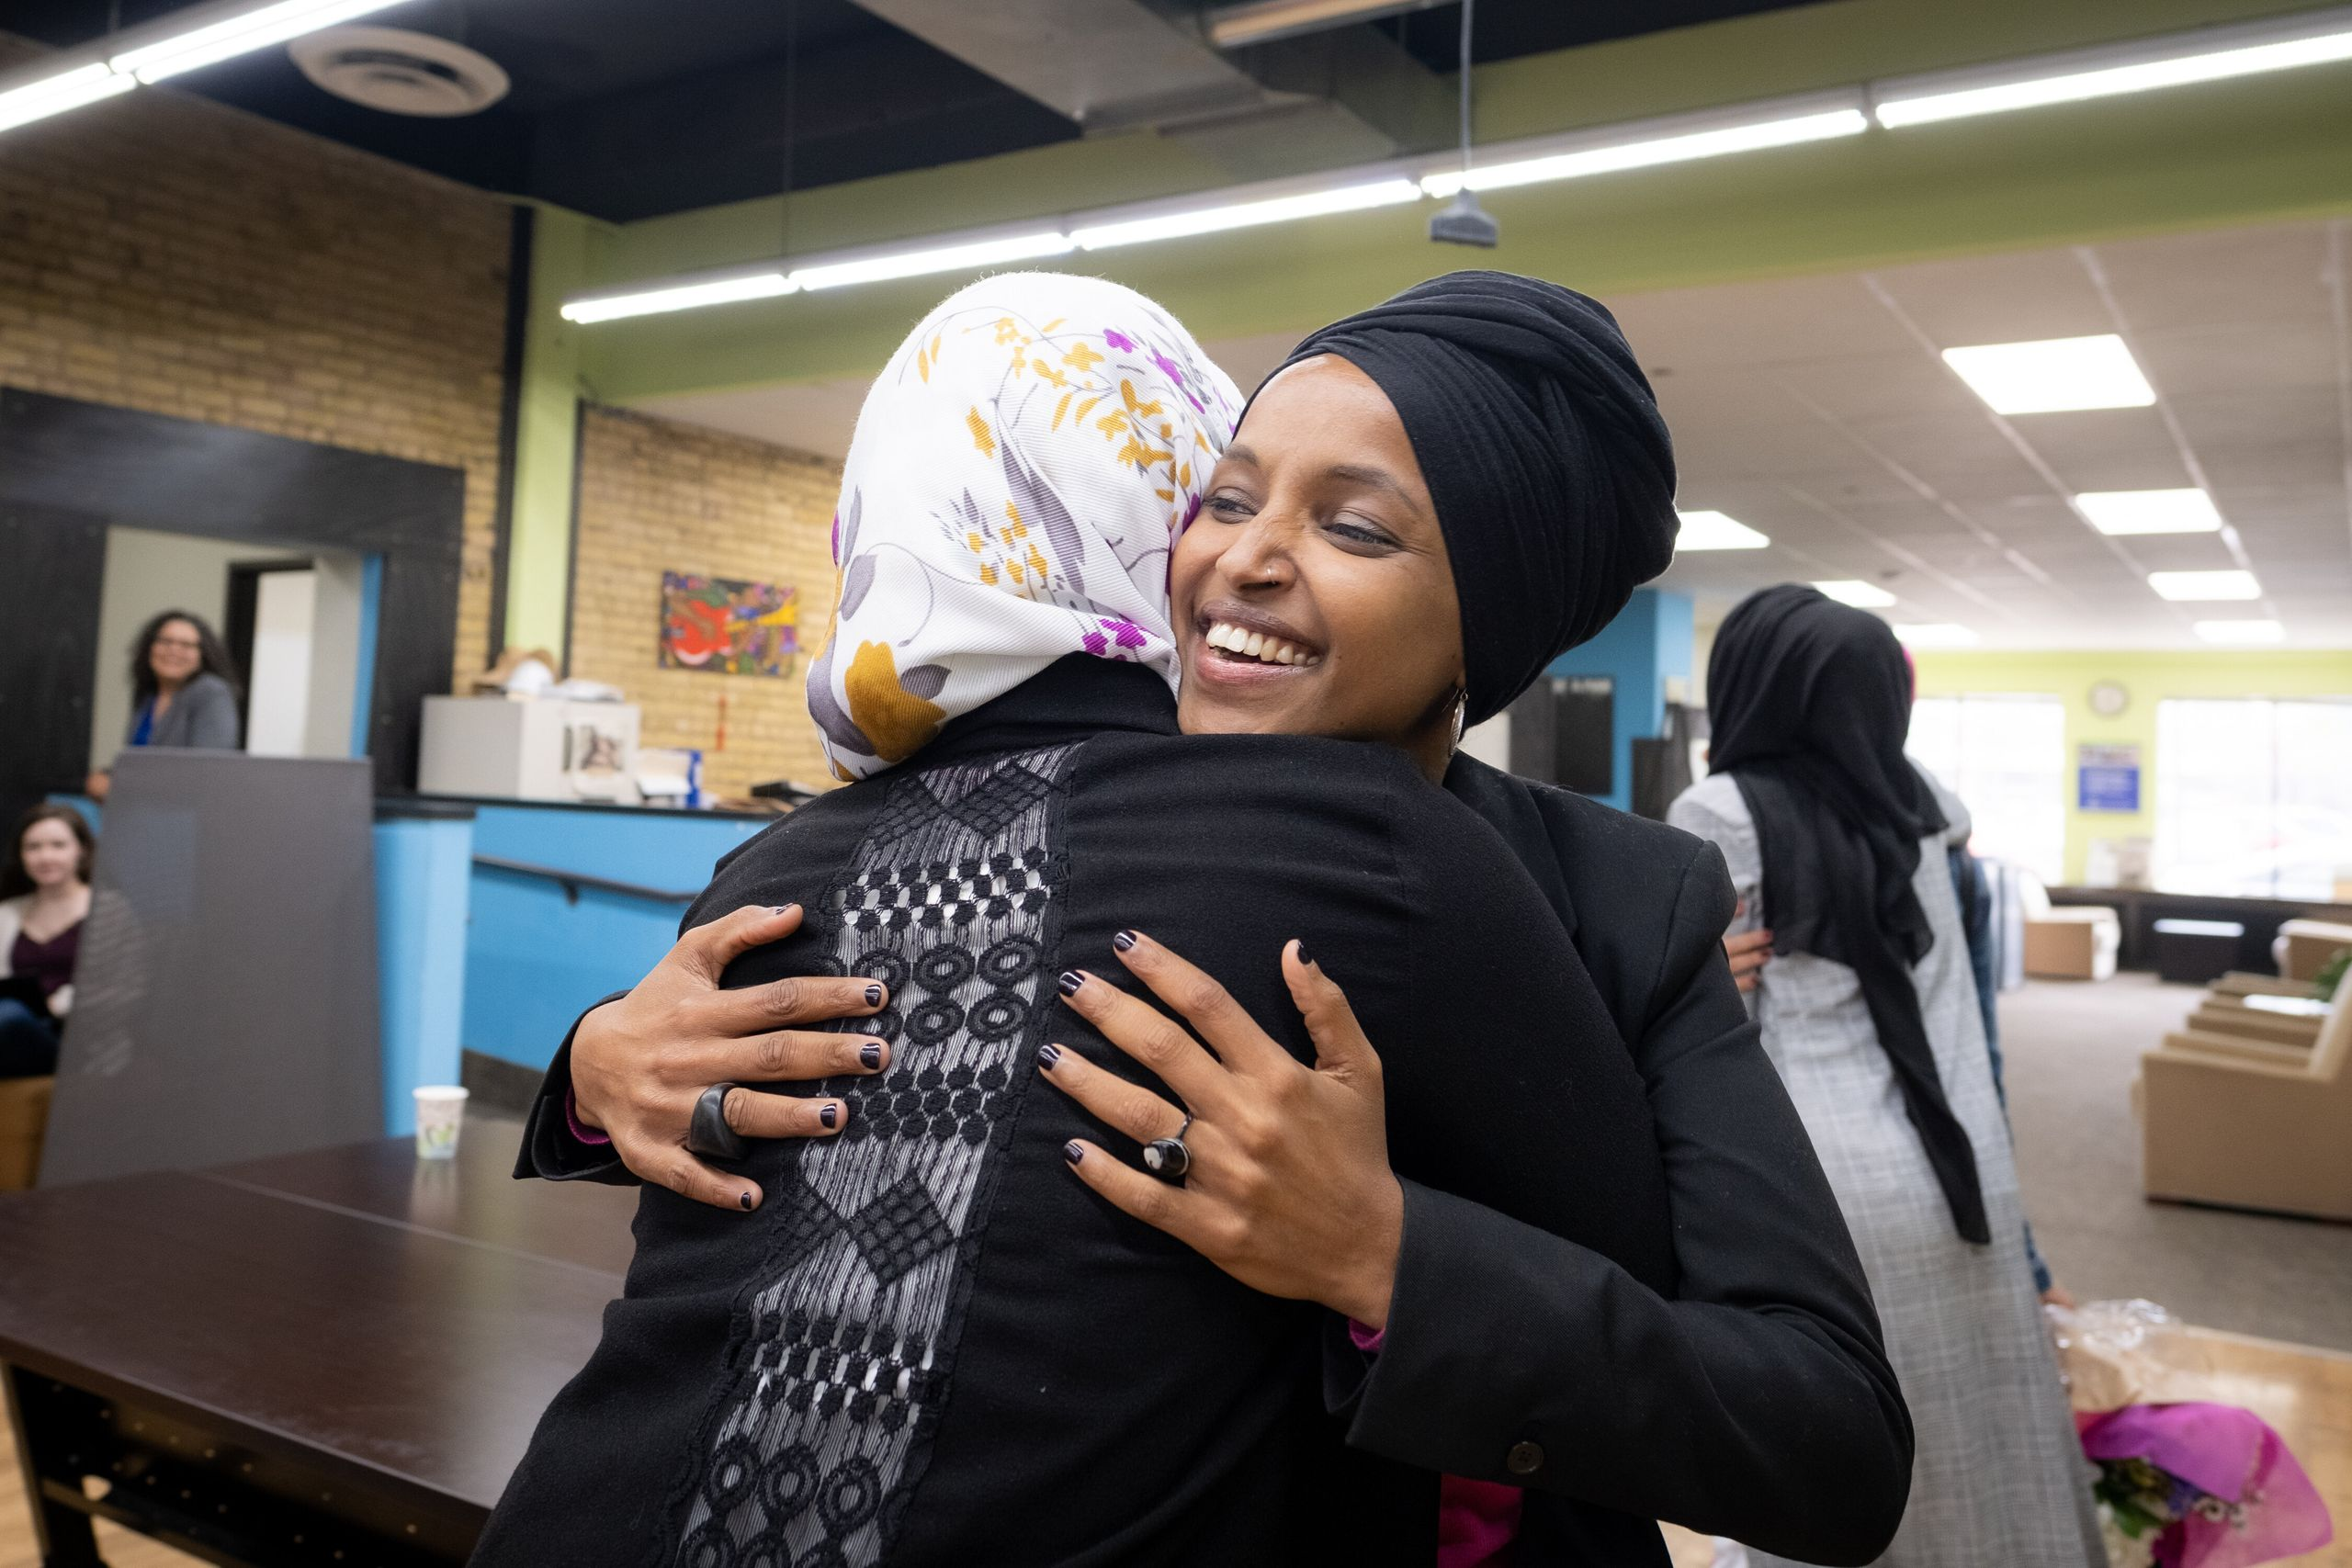 Representative Ilhan Omar greets community members at the RISE (Reviving Sisterhood) office in North Minneapolis on April 24,